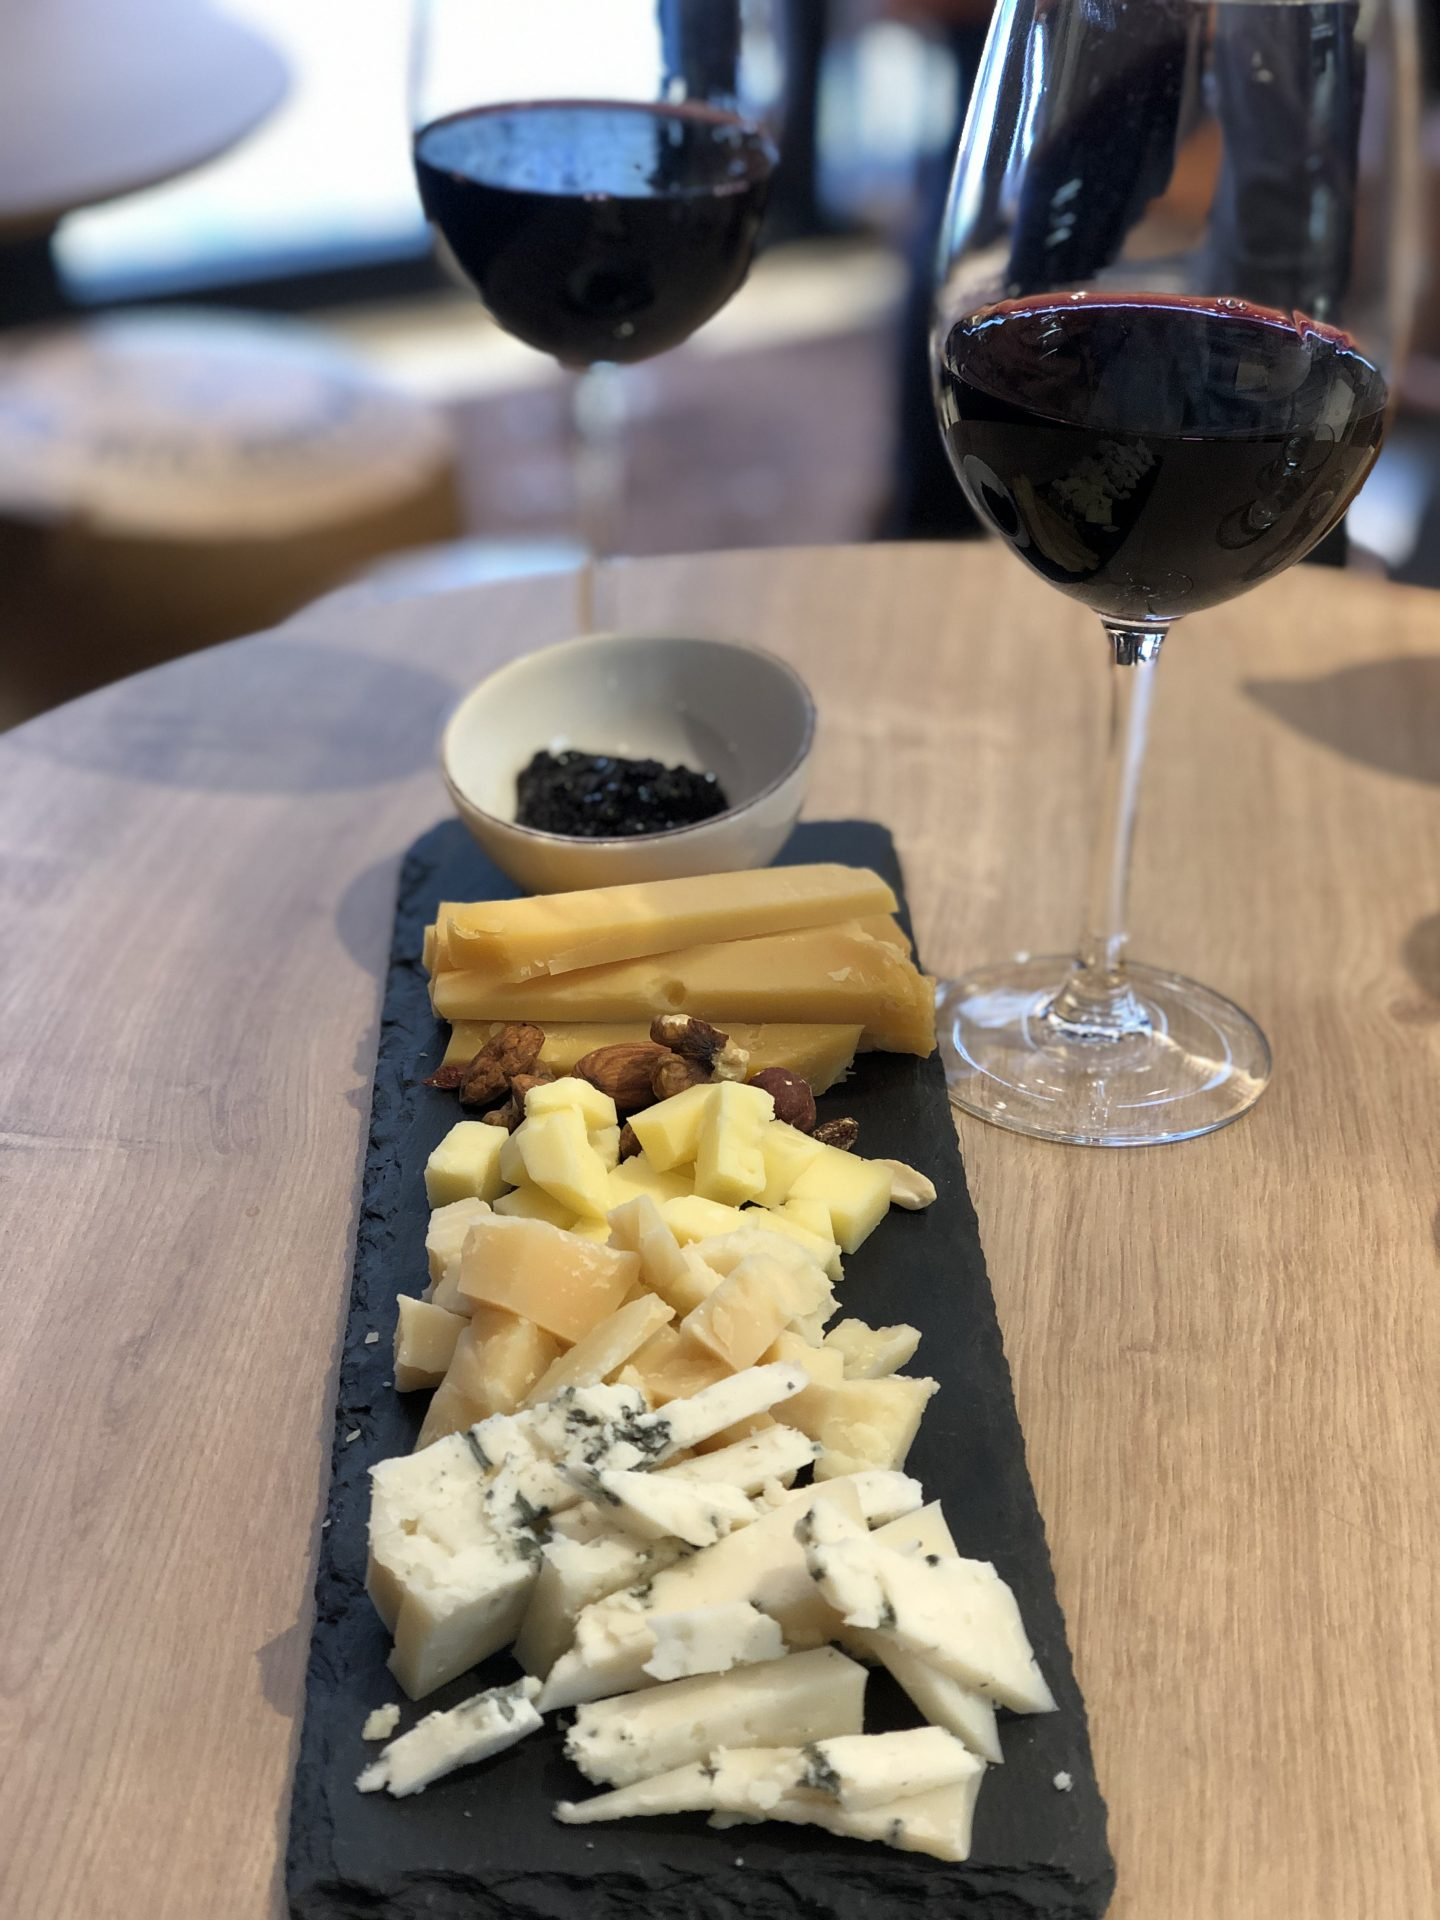 Best restaurants in Vilnius: Cheese board with three huge piles of cheese on a slate, with two glasses of red wine at the end of the board